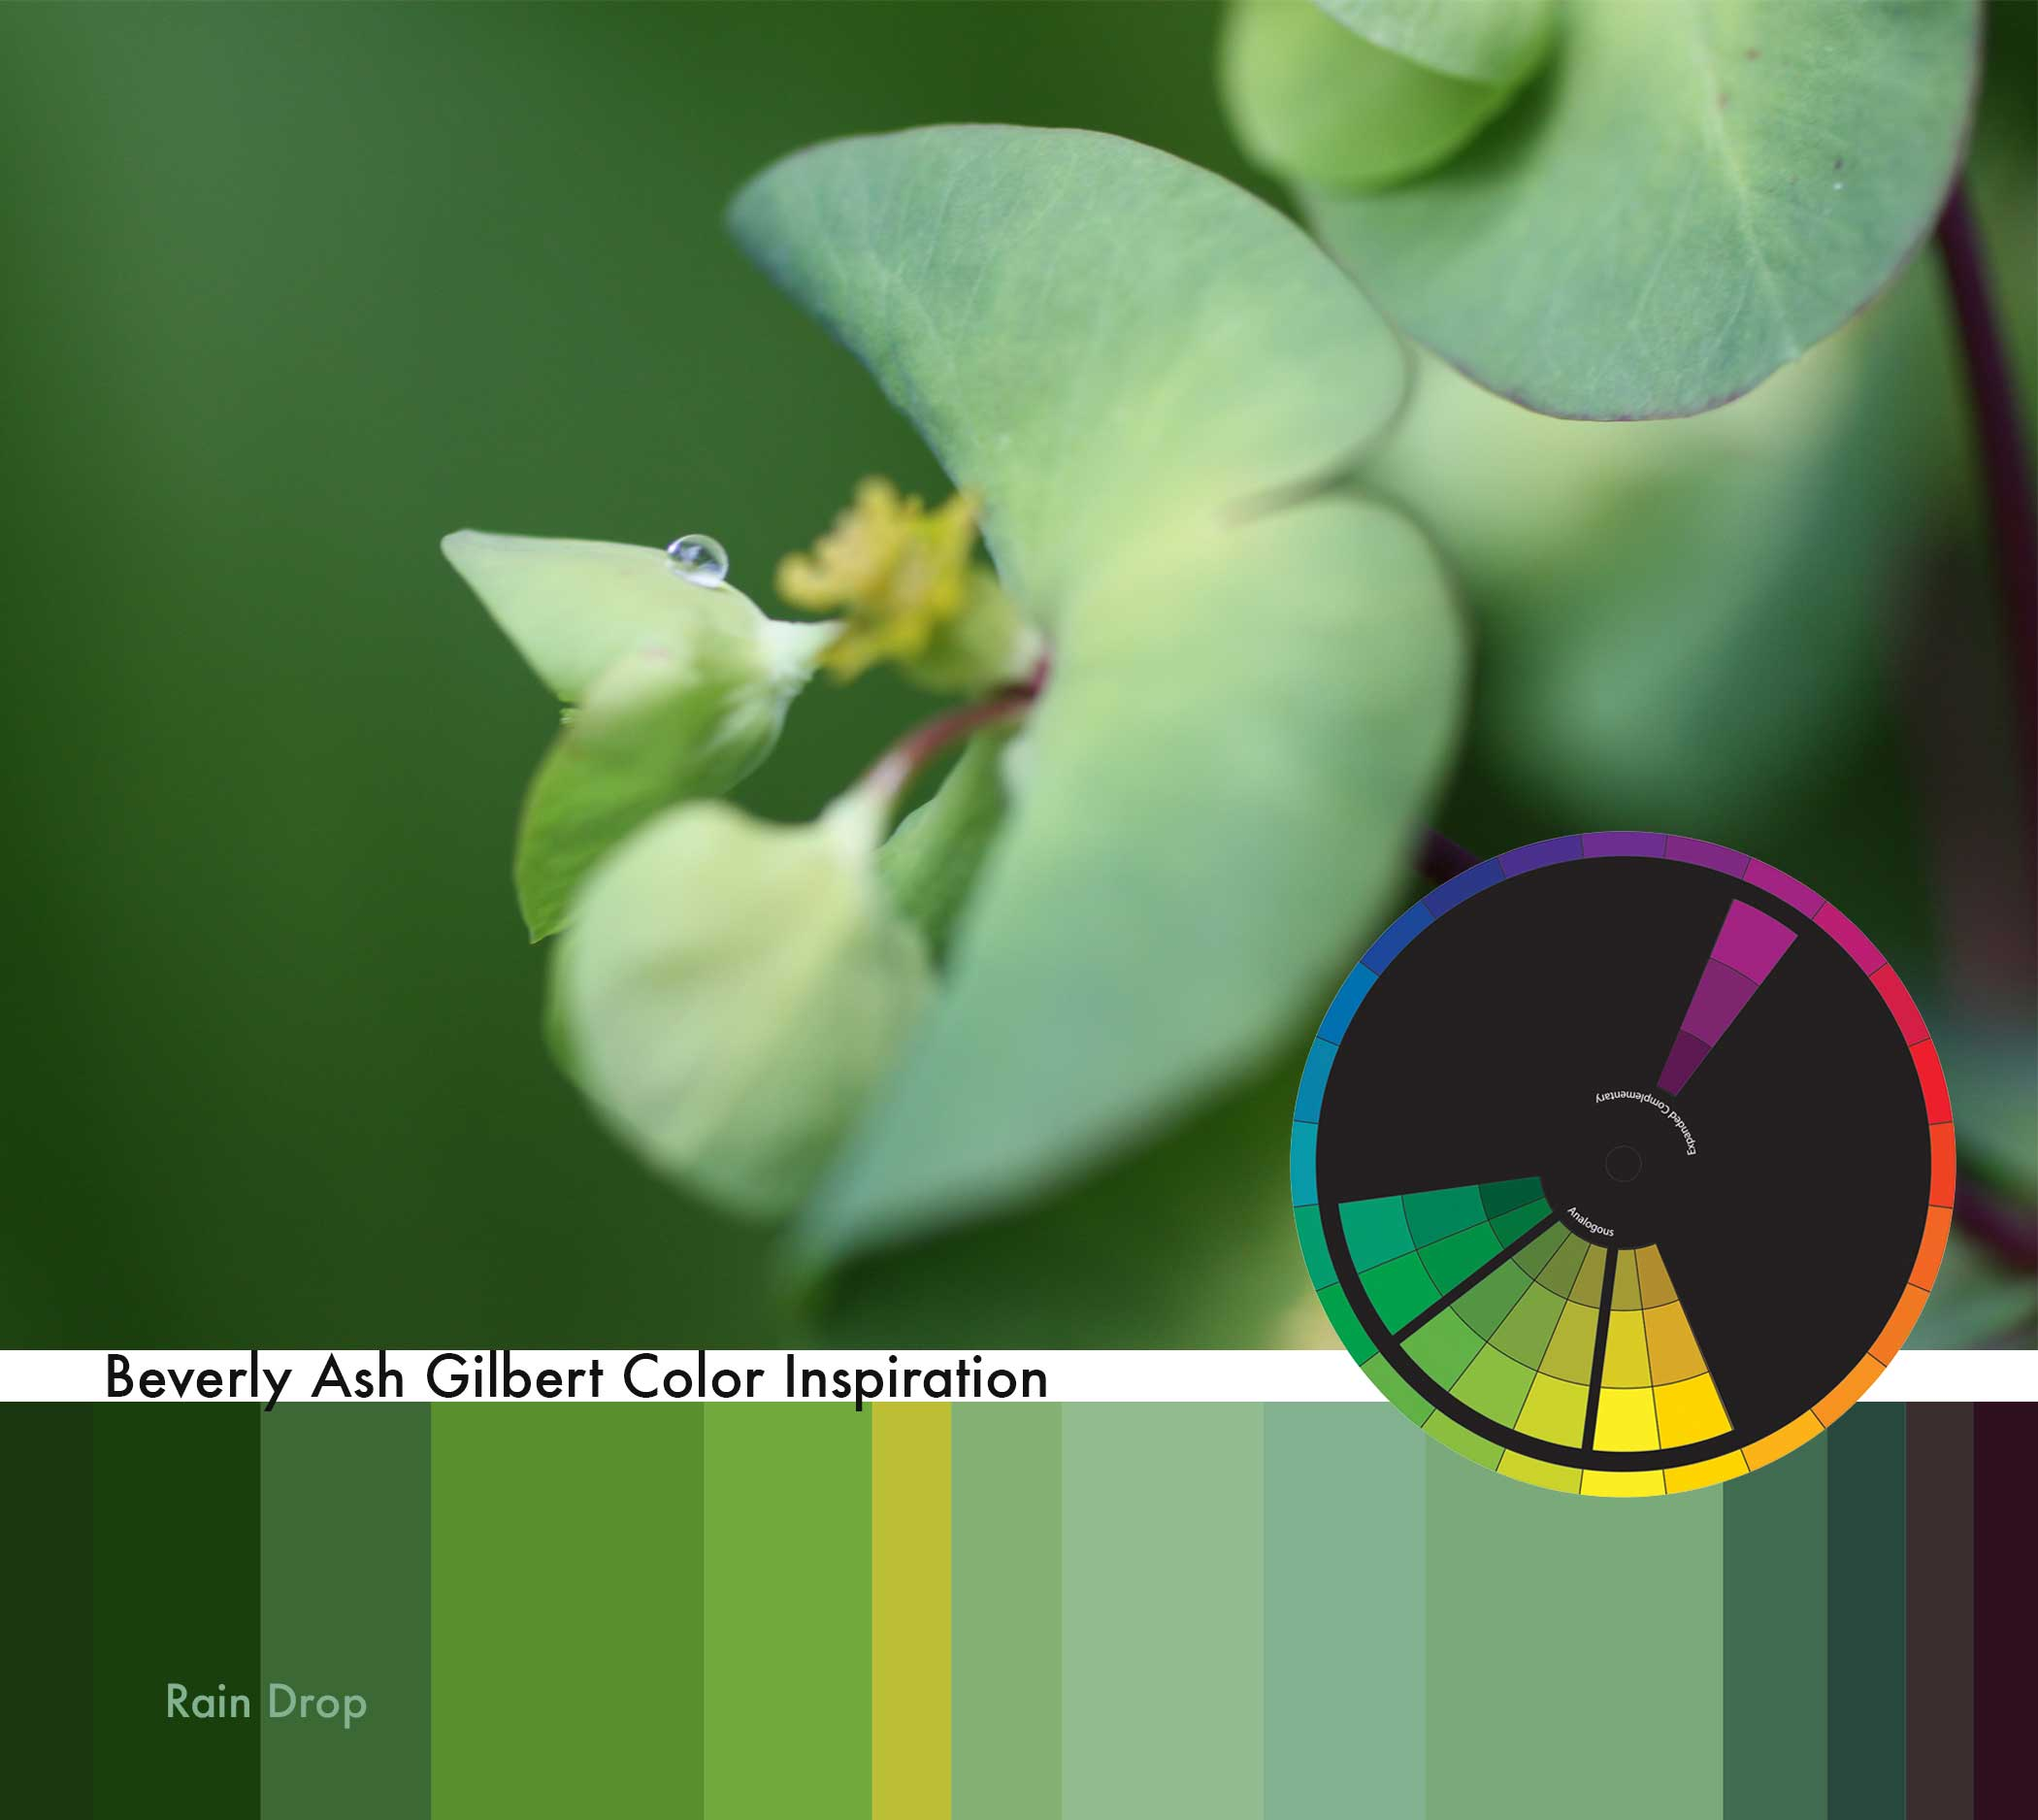 ColorInspiration_GreenRainDrop_small.jpg